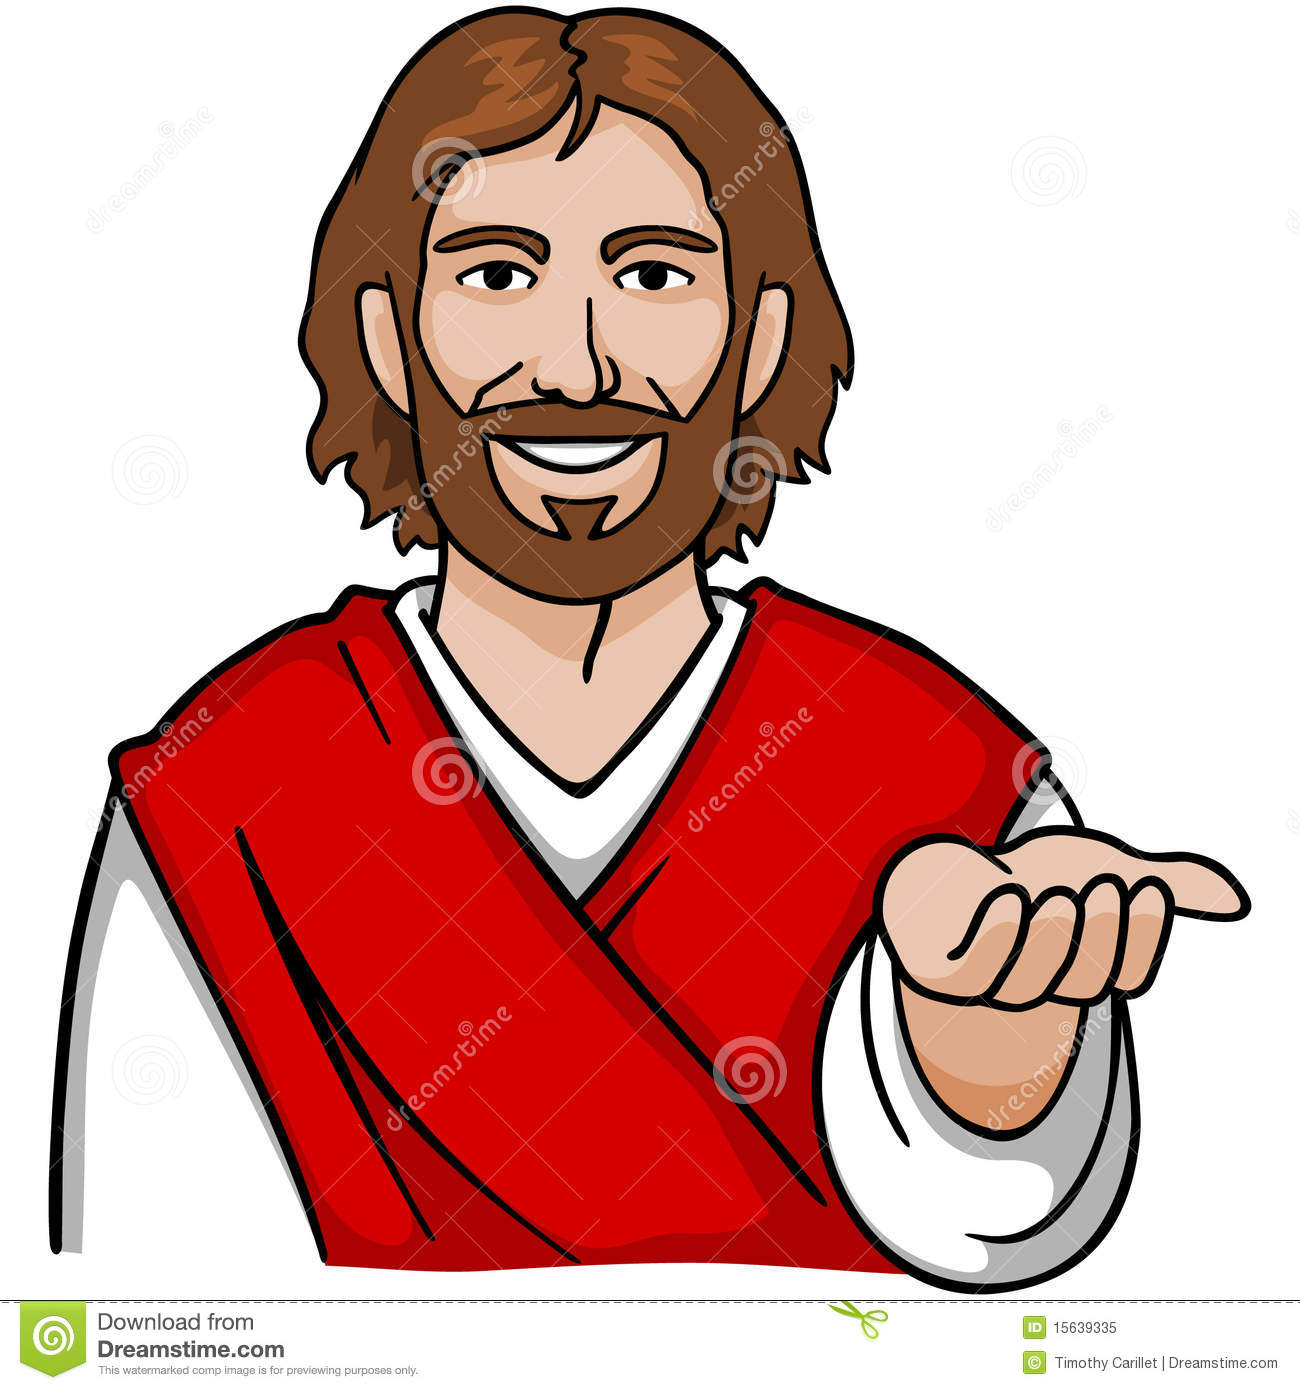 Jesus Resurrection Clip Art Clipart of jesus resurrection